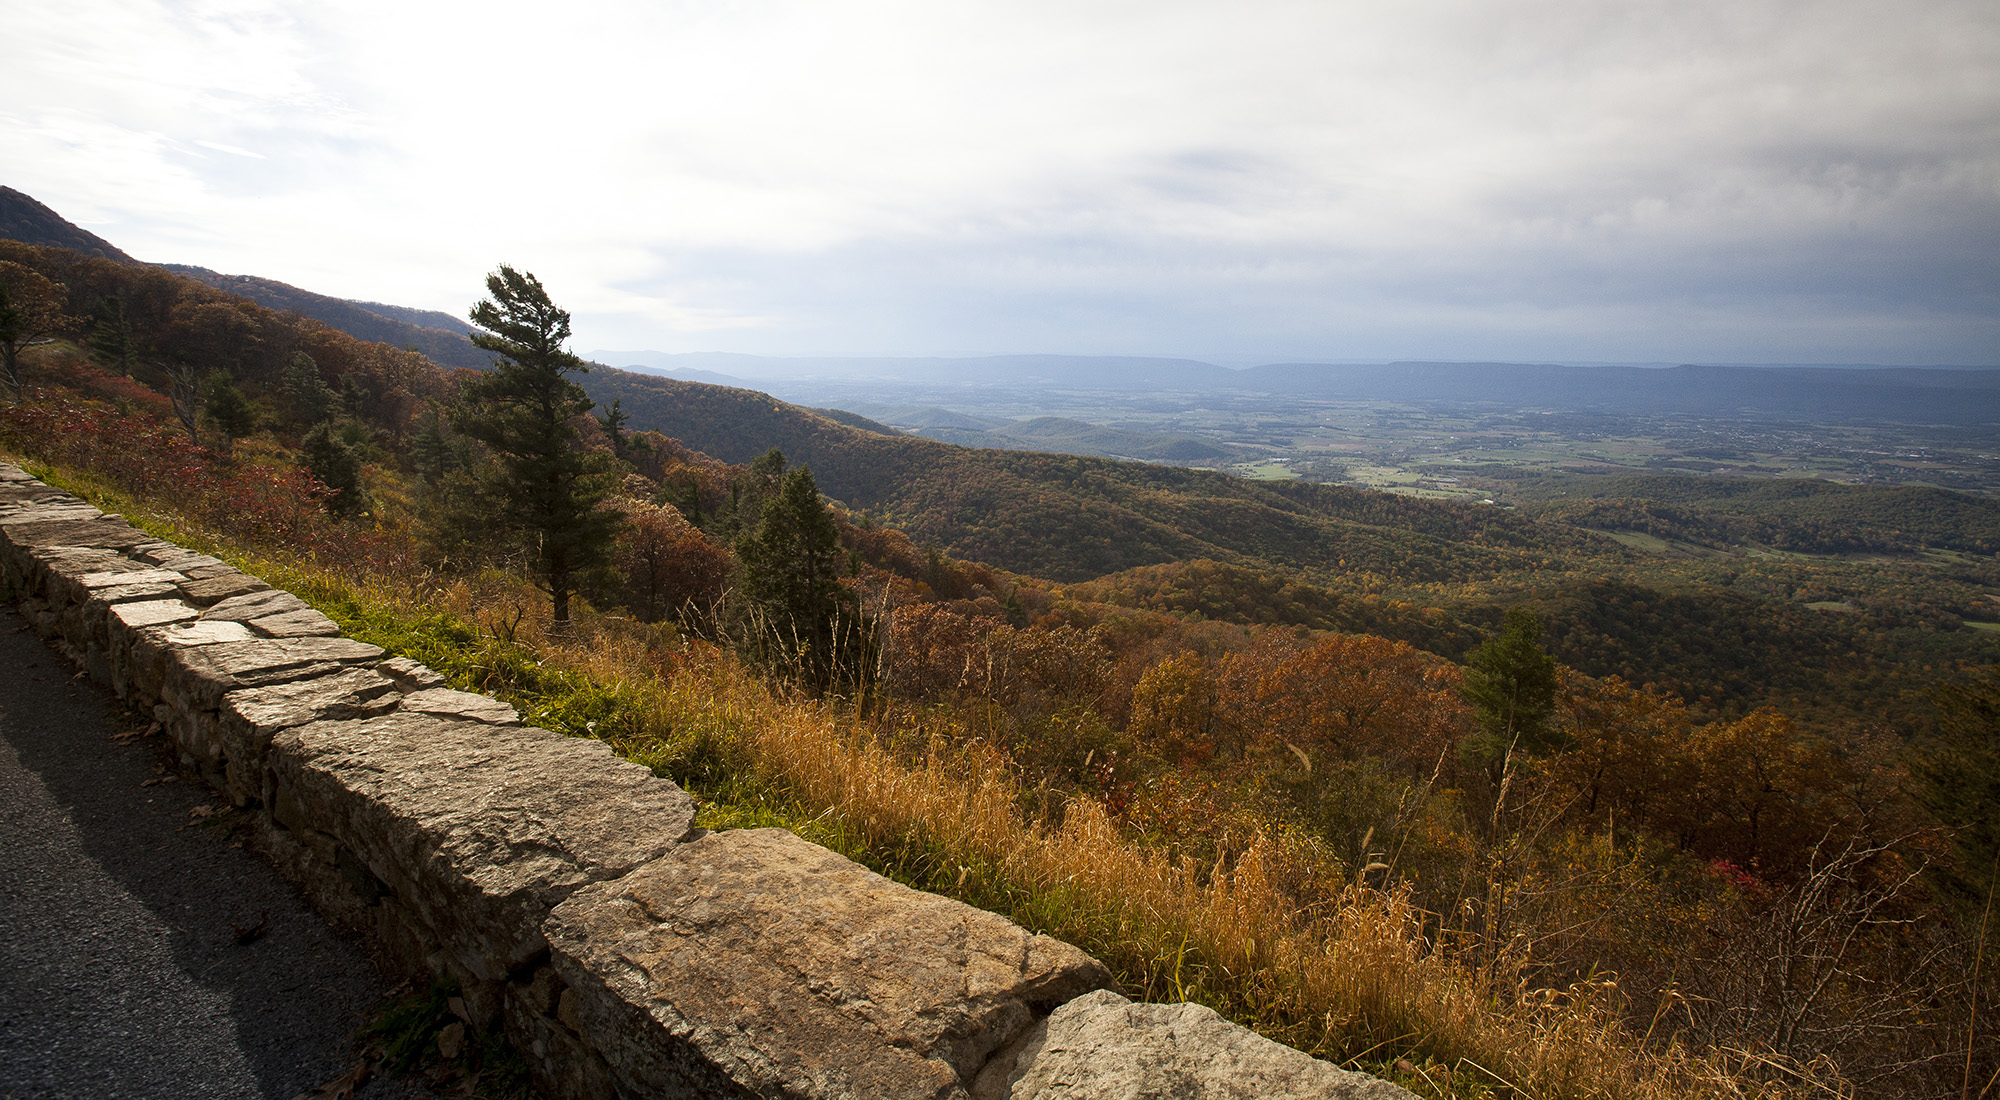 Stony Man Mountain Overlook